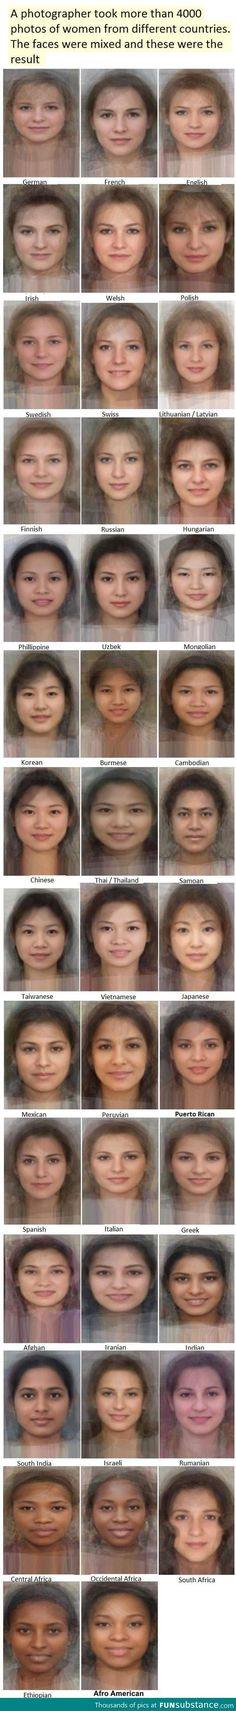 The average woman from each country...not so one in a million after all...